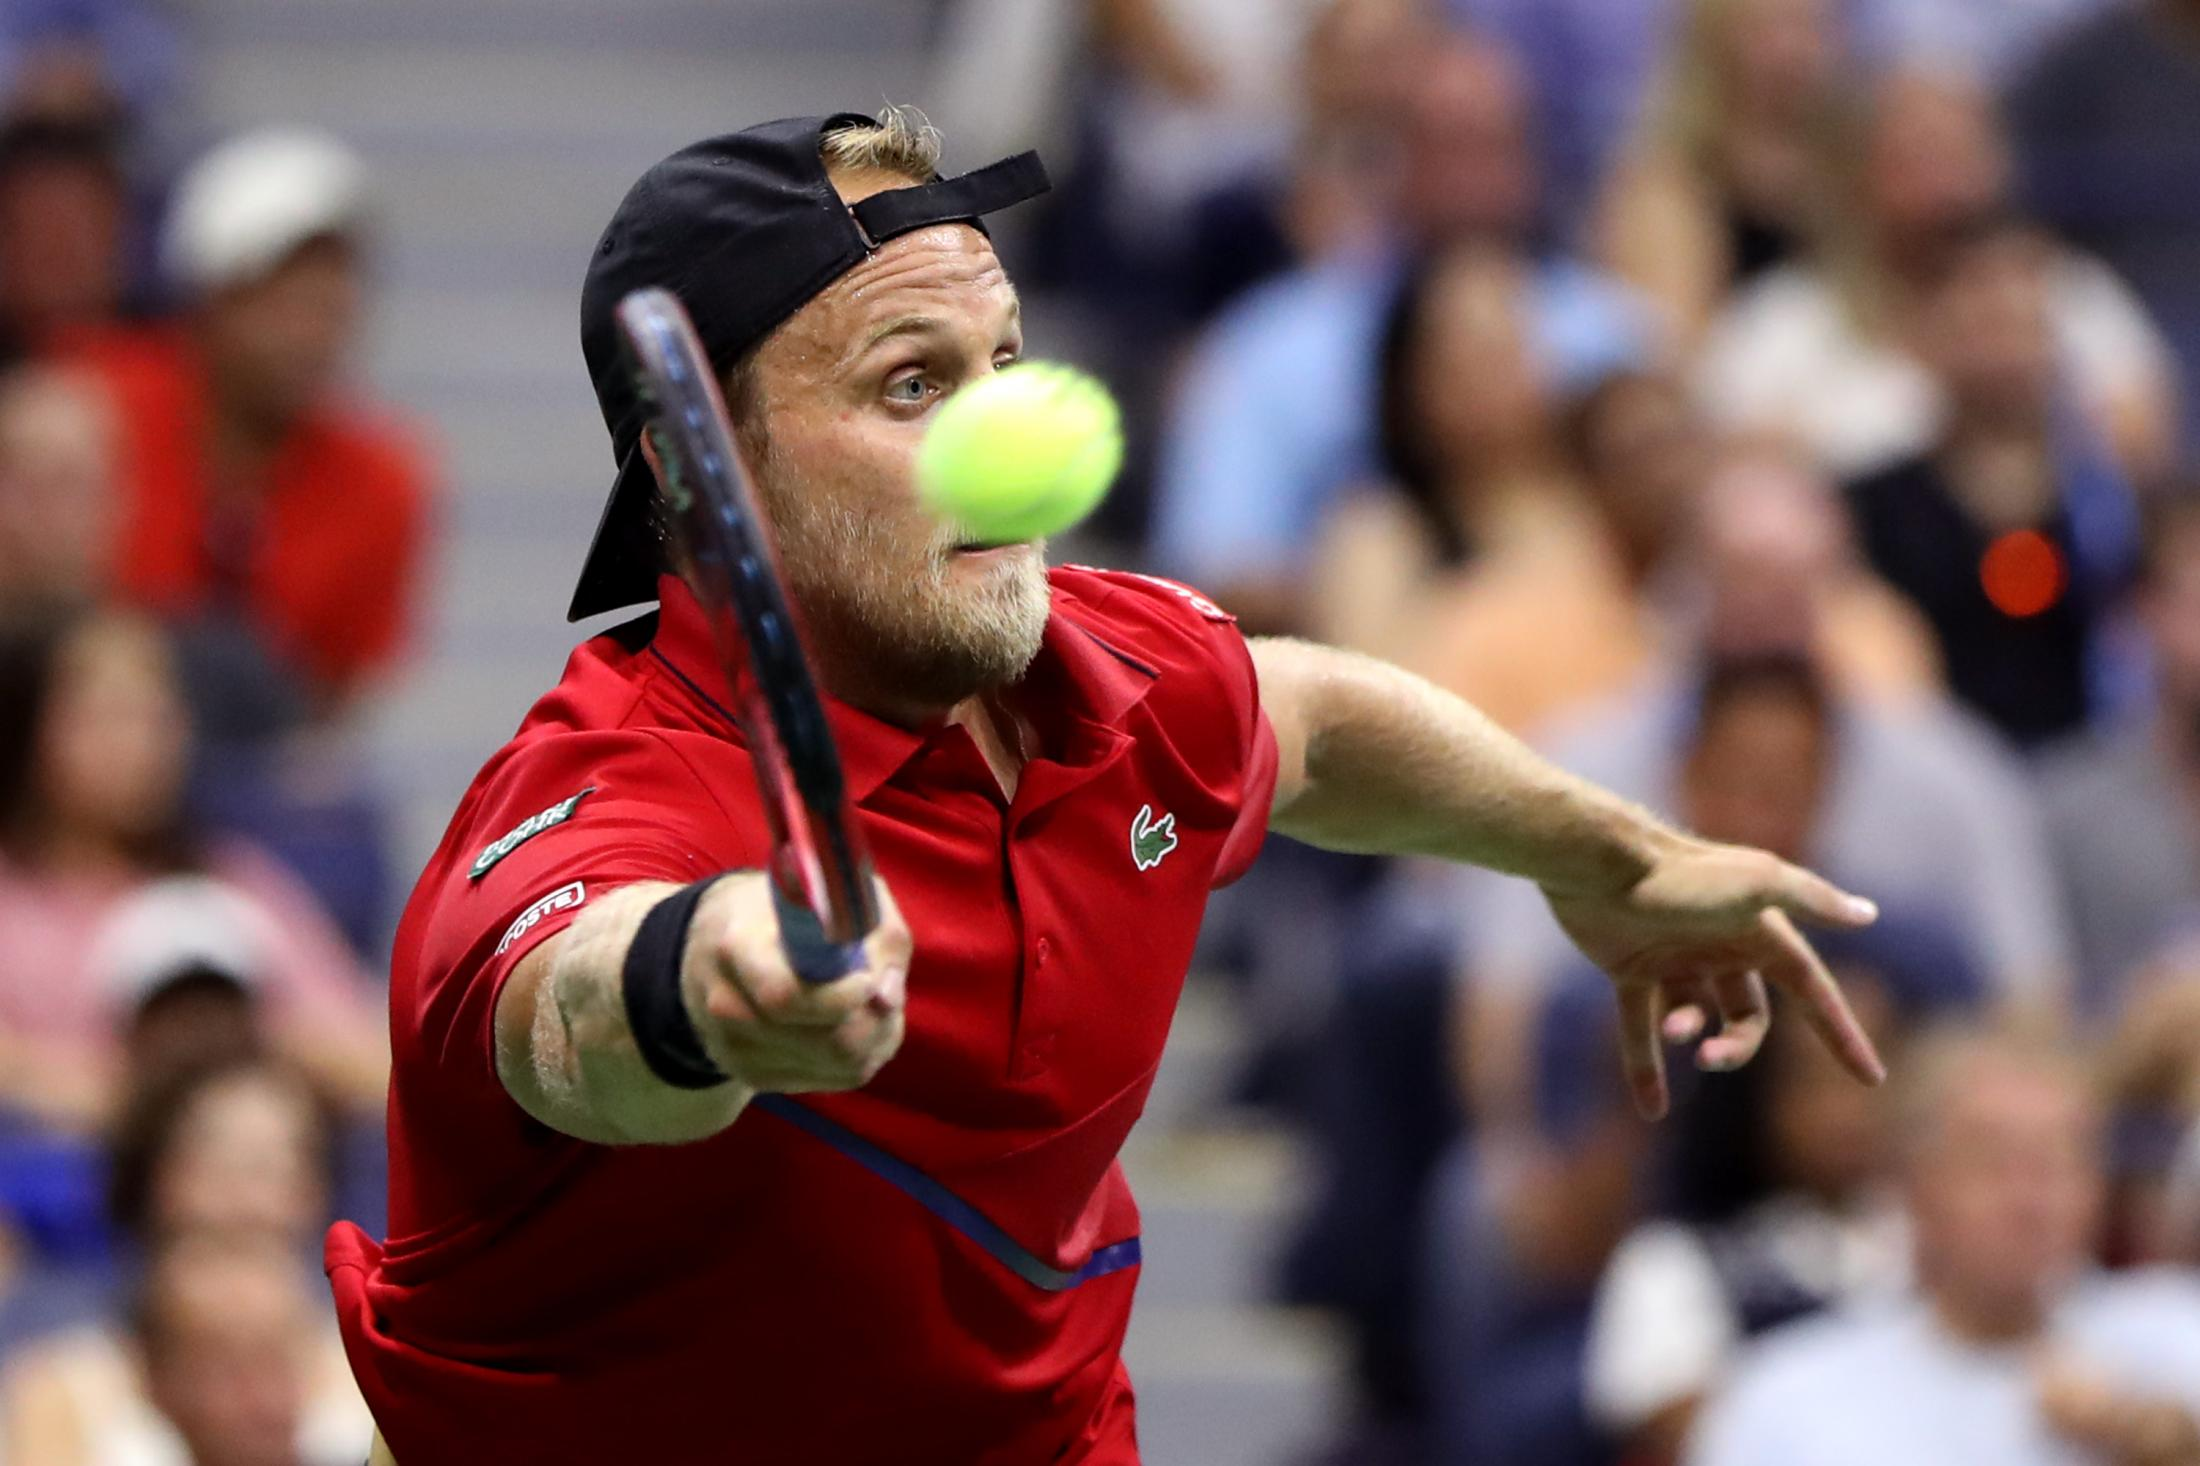 NEW YORK, NEW YORK - AUGUST 30: Denis Kudla of the United States returns a shot during his Men's Singles third round match against Novak Djokovic of Serbia on day five of the 2019 US Open at the USTA Billie Jean King National Tennis Center on August 30, 2019 in Queens borough of New York City. (Photo by Katharine Lotze/Getty Images)